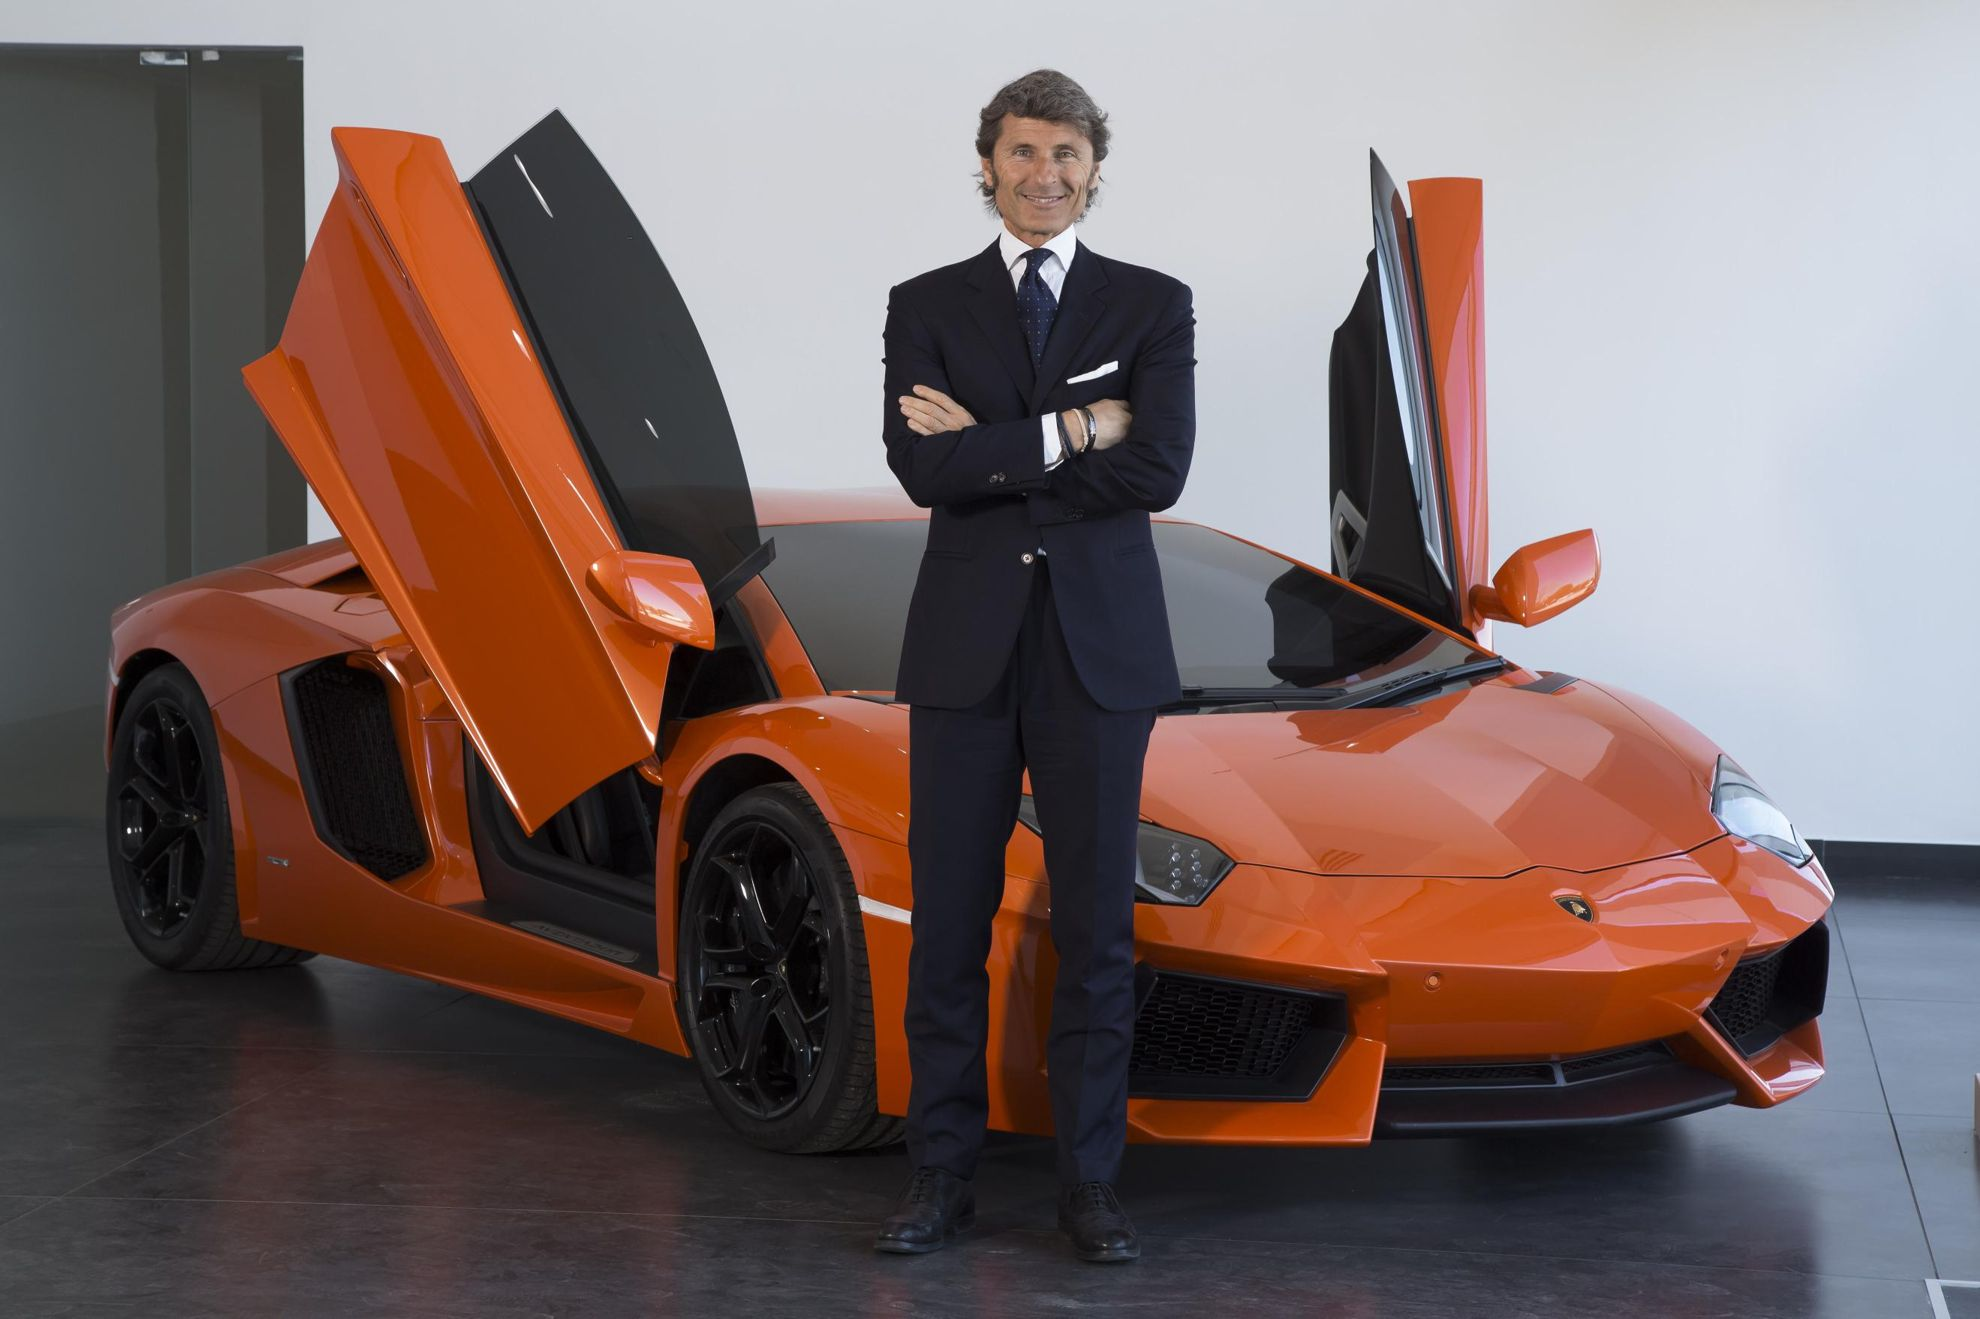 Looking For A Job At Lamborghini Italy